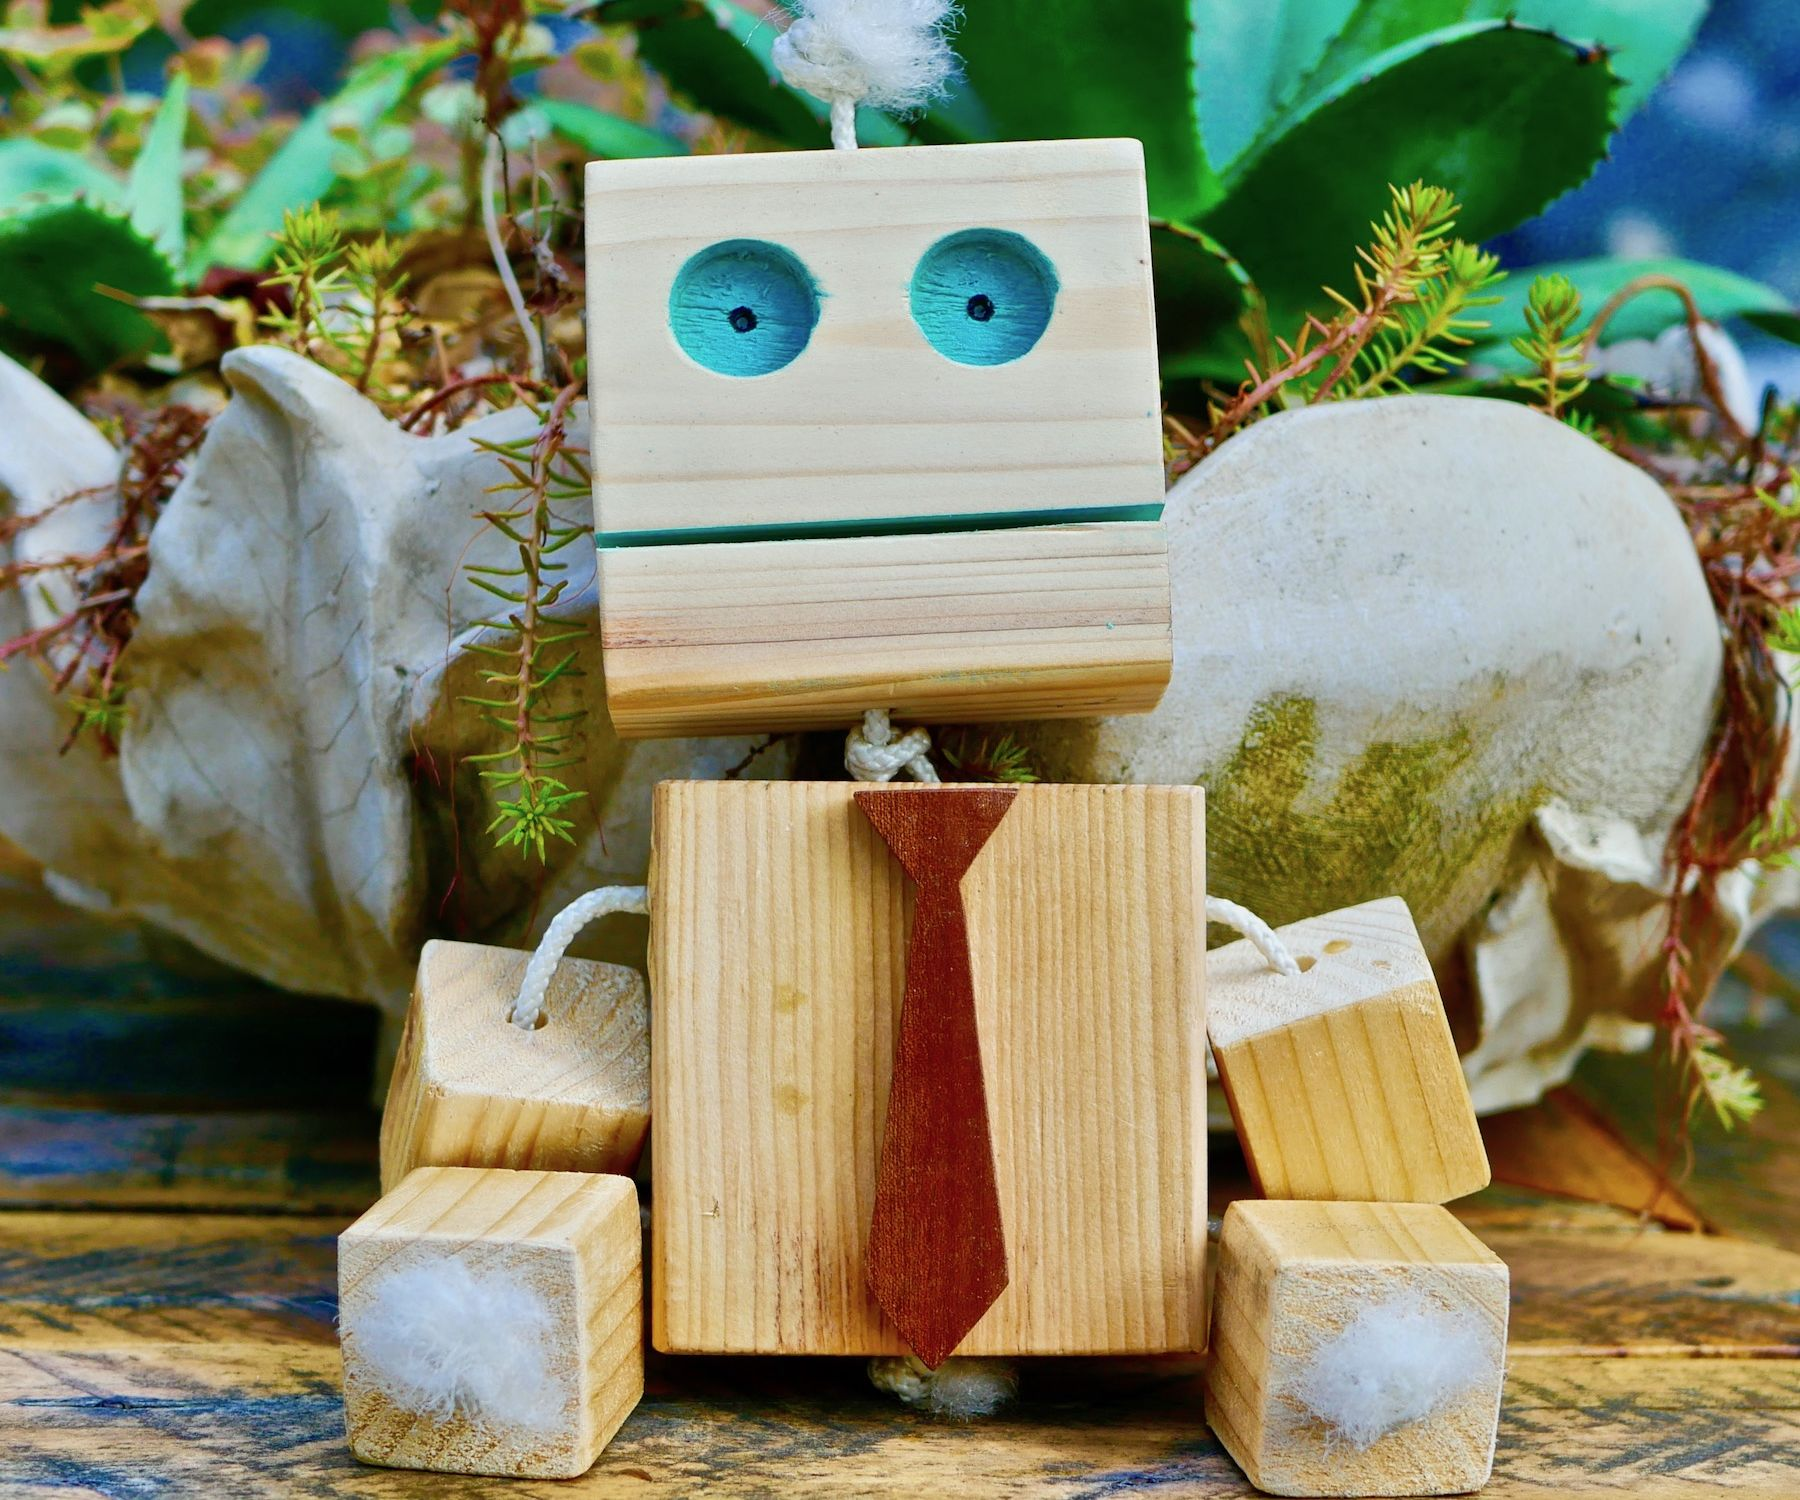 Wooden Robot DIY Homemade Toy